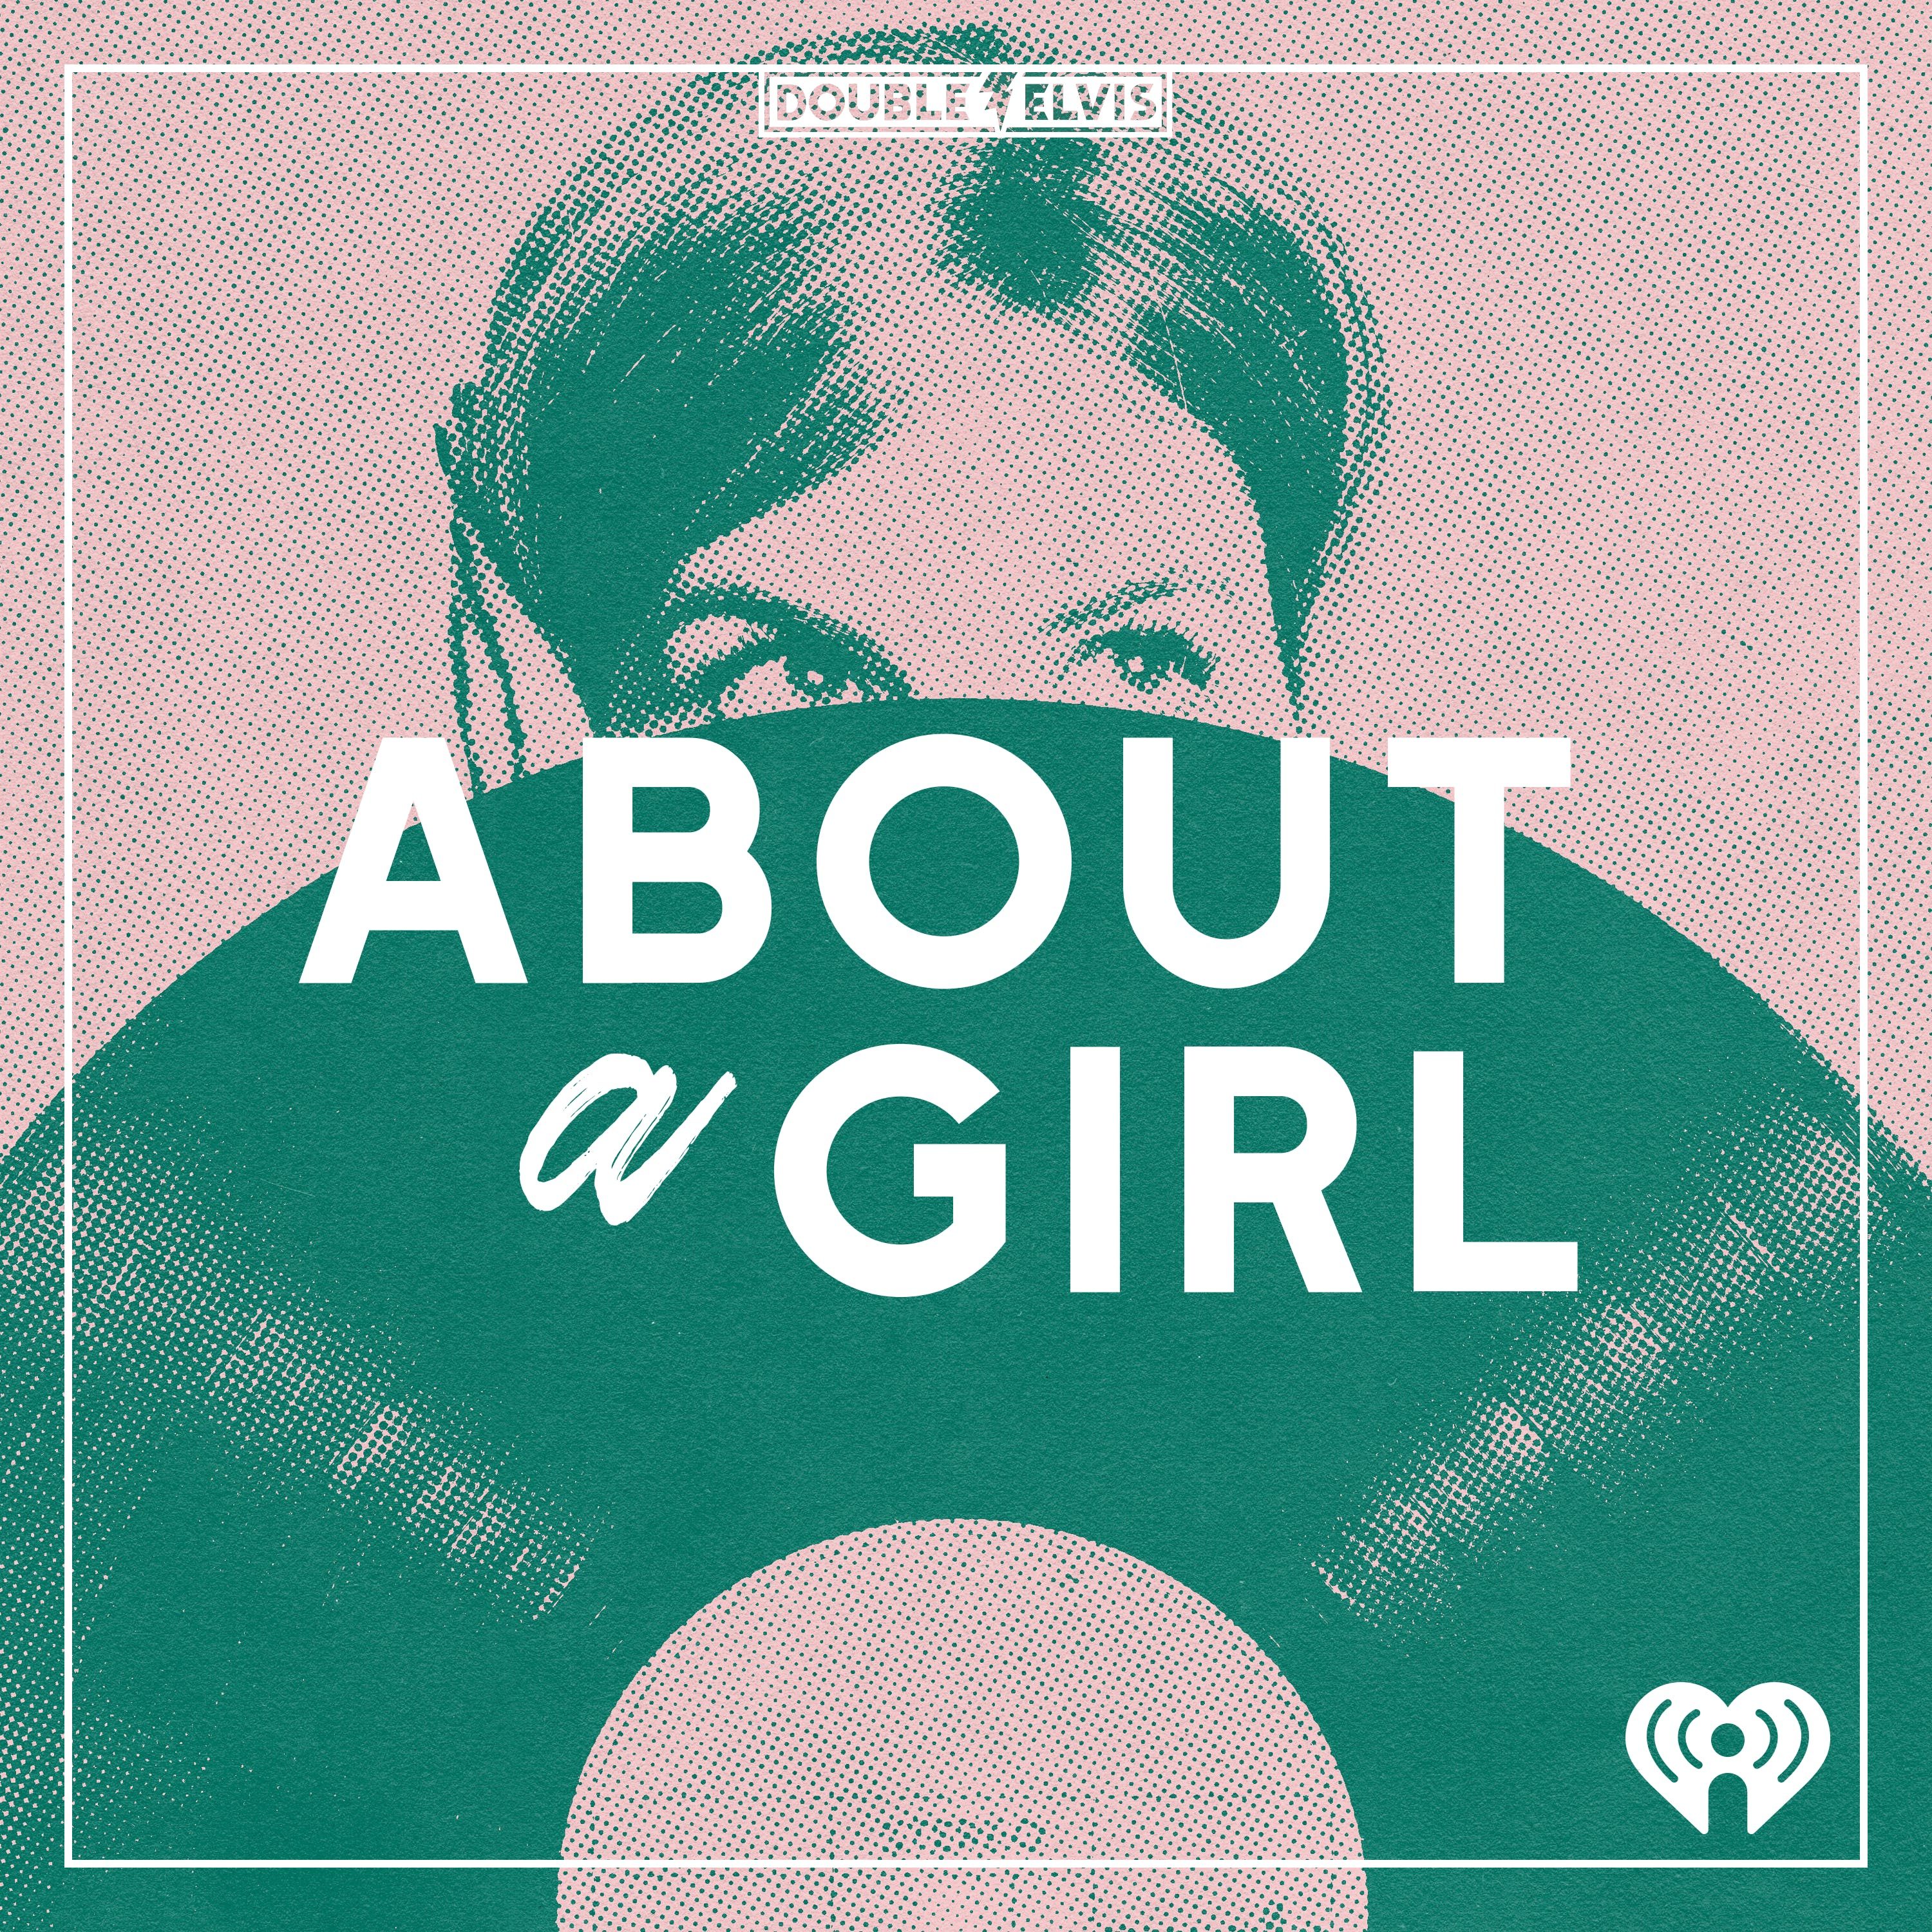 Introducing: About A Girl